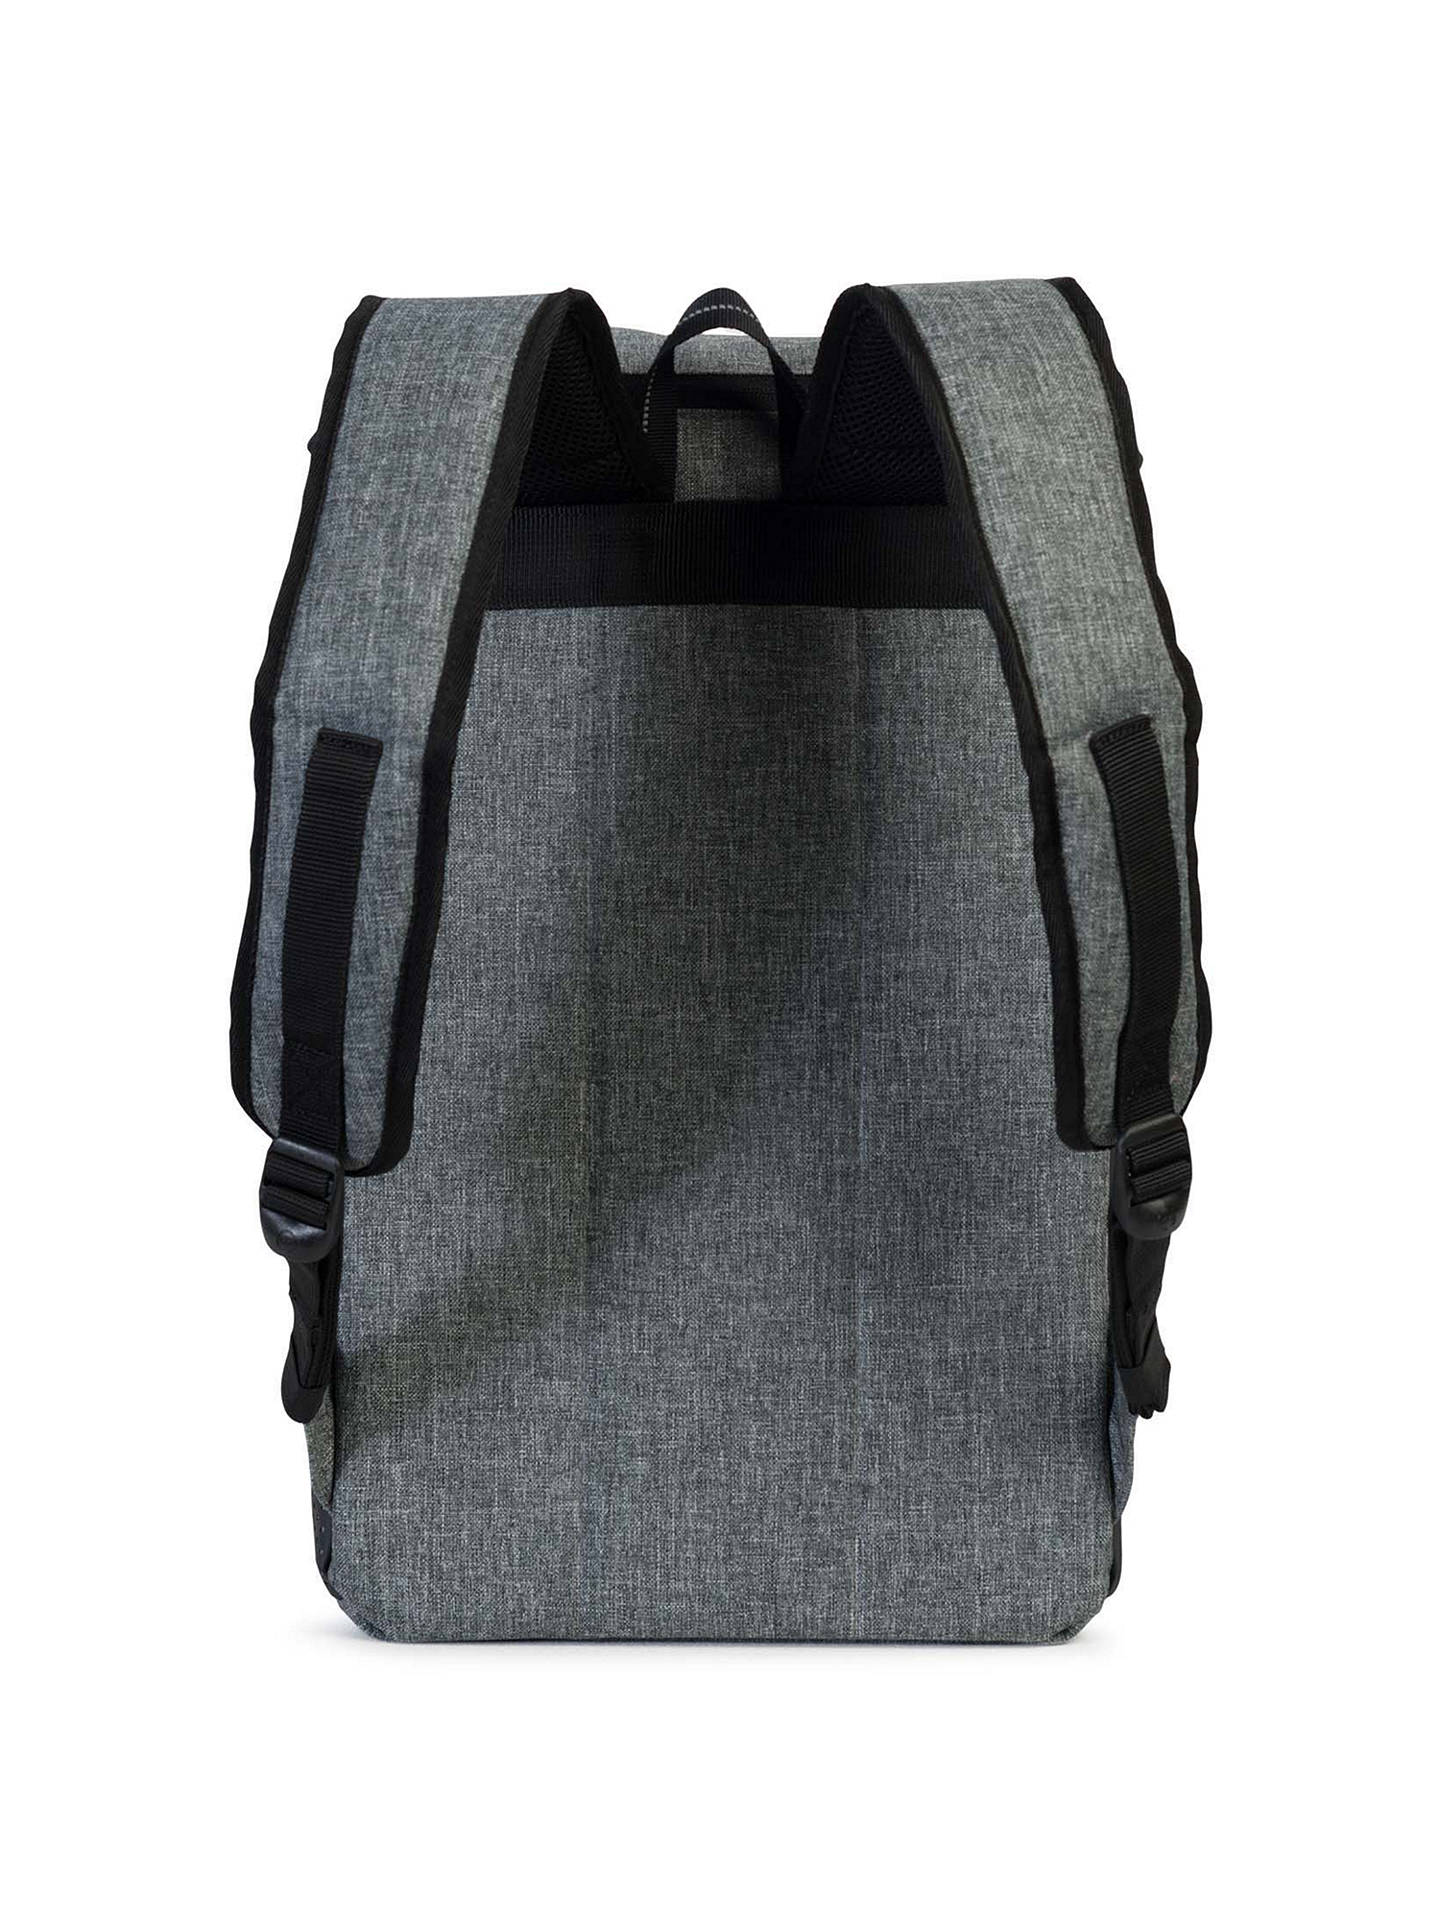 9dfd951b4e7 ... Buy Herschel Supply Co. Iona Backpack